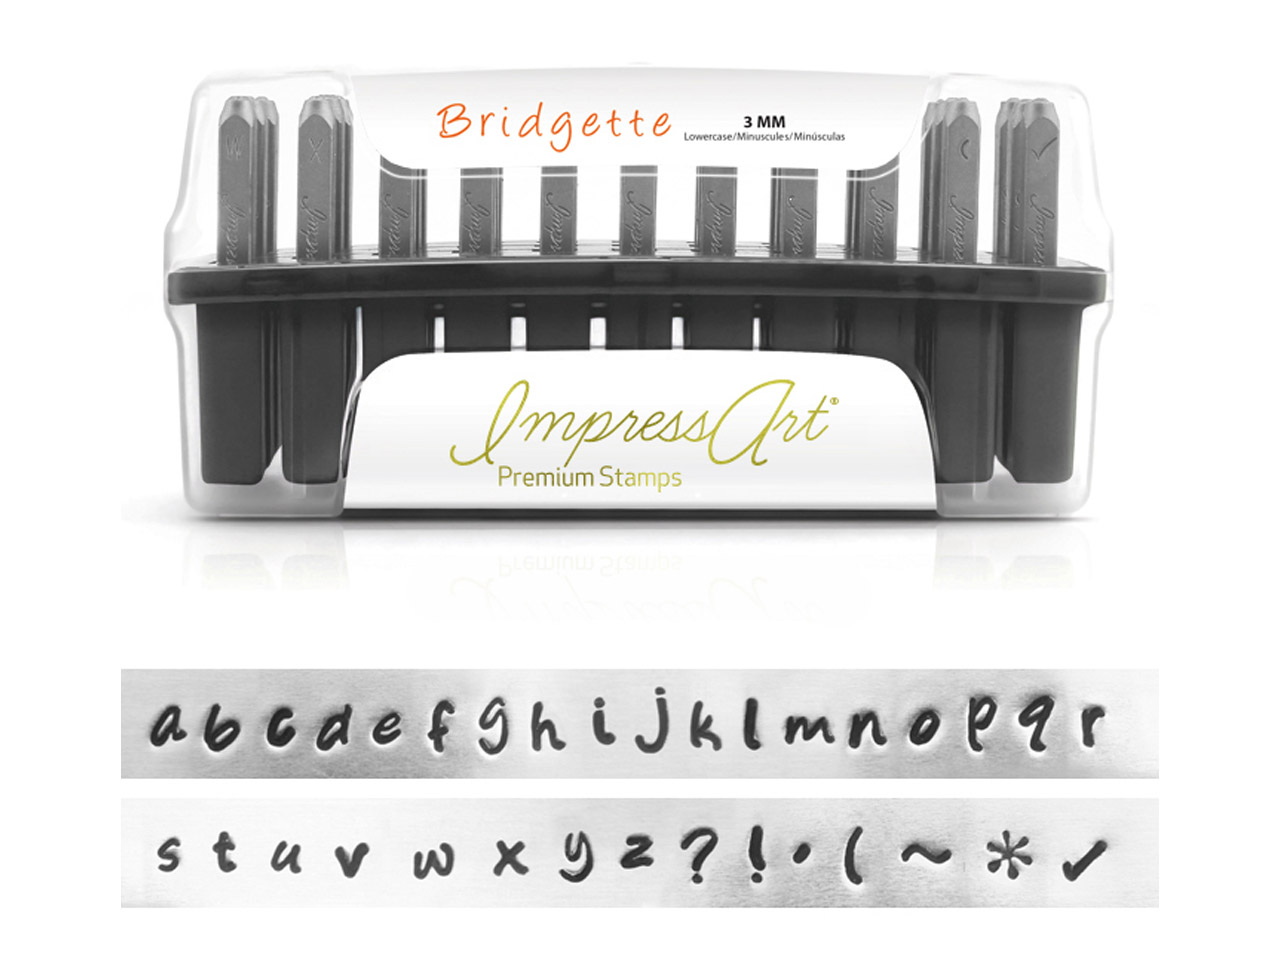 Impressart Bridgette Premium Letter Stamp Lowercase Letter Stamp Set    3mm